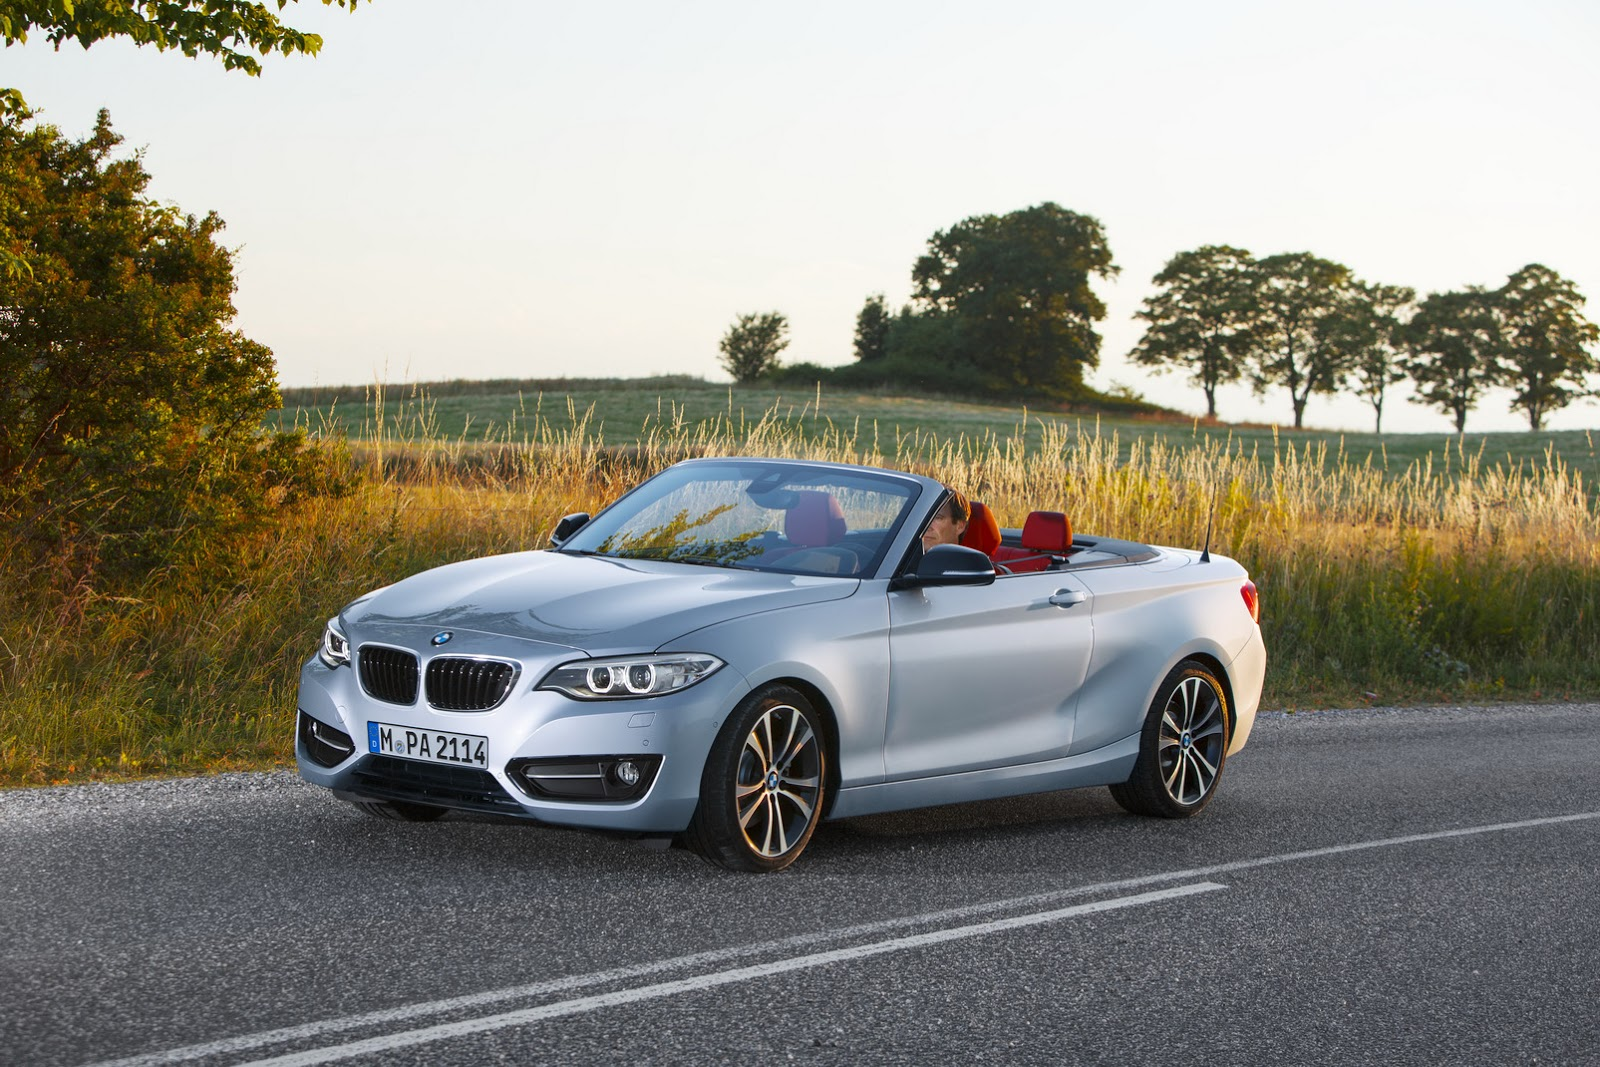 new bmw 2 series convertible photo gallery autocar india. Black Bedroom Furniture Sets. Home Design Ideas